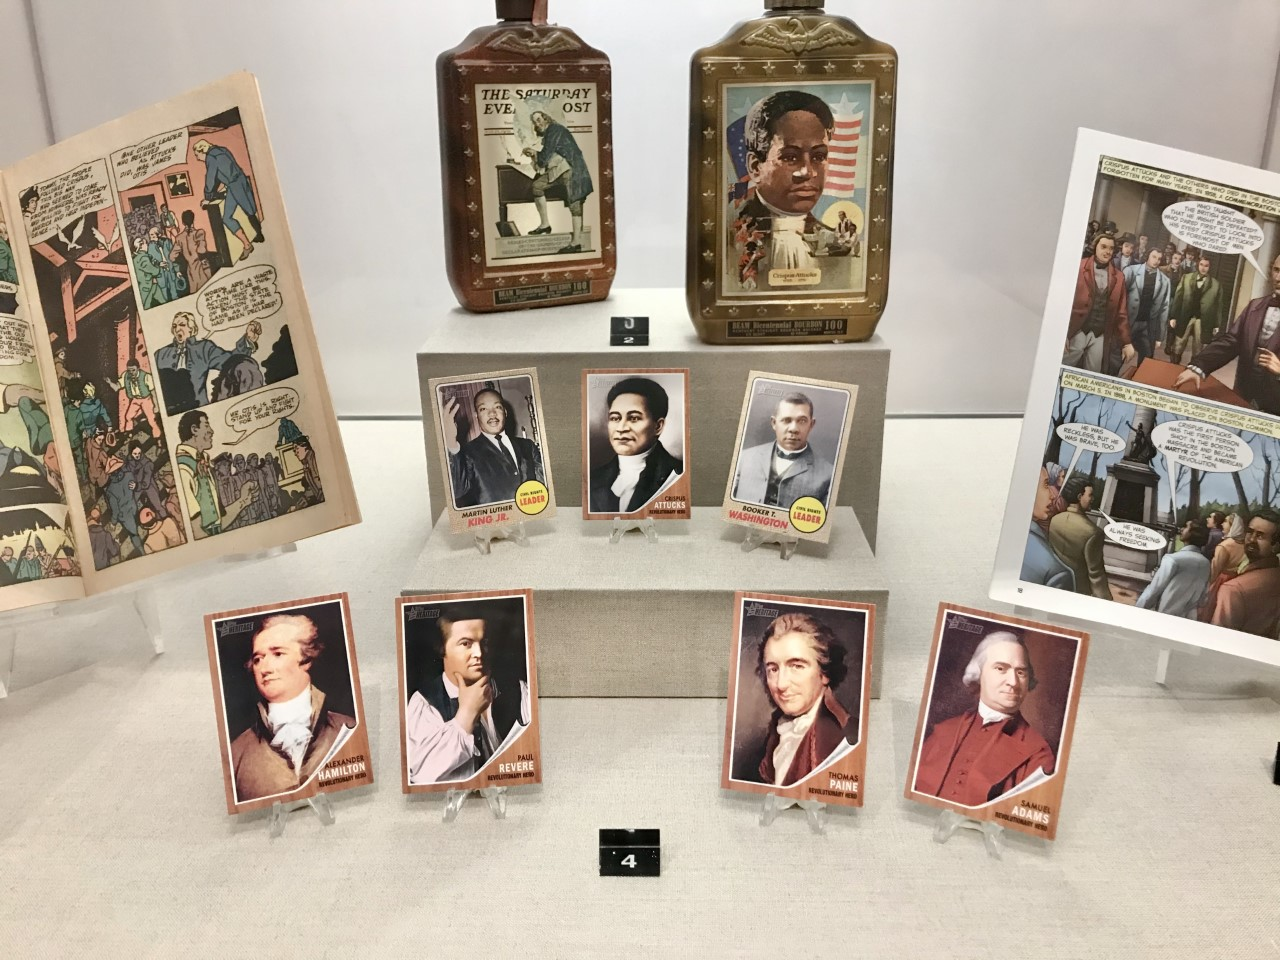 """Reflecting Attucks"" puts Crispus Attucks into perspective alongside other Founding Fathers of the American Revolution and then looks at how his legacy has been used for social and racial justice efforts in America. (Courtesy Revolutionary Spaces)"